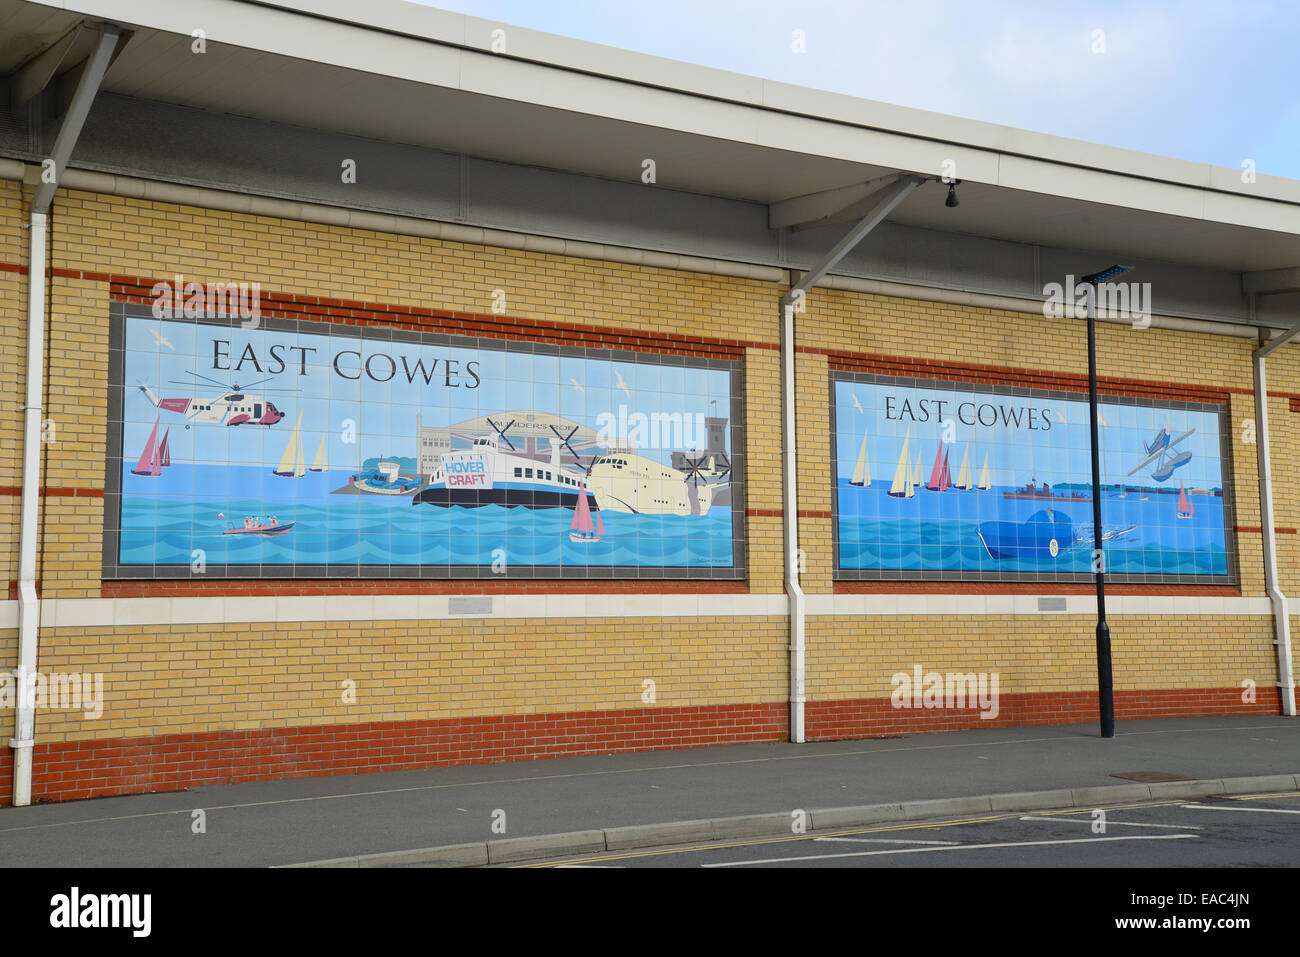 East Cowes murals on wall of Waitrose Supermarket, East Cowes, Isle of Wight, England, United Kingdom - Stock Image